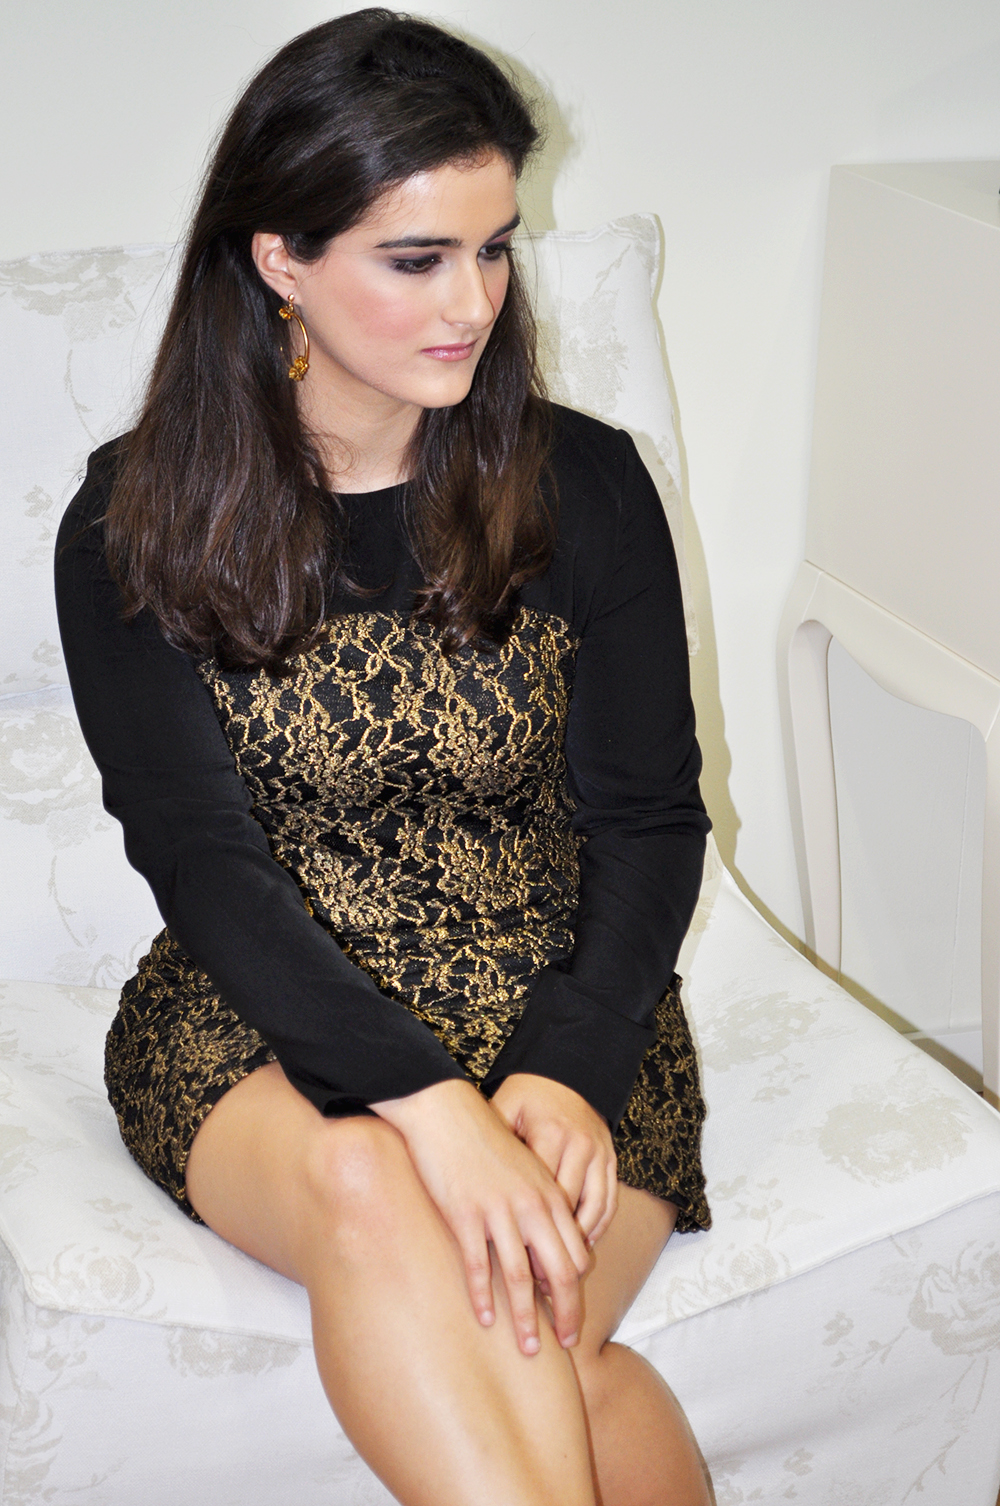 something fashion blogger valencia Letto El Andén de Marie Jo, PLACEVLC, collaboration new year's eve dresses lace party outfit, elegant look ideas christmas interior design